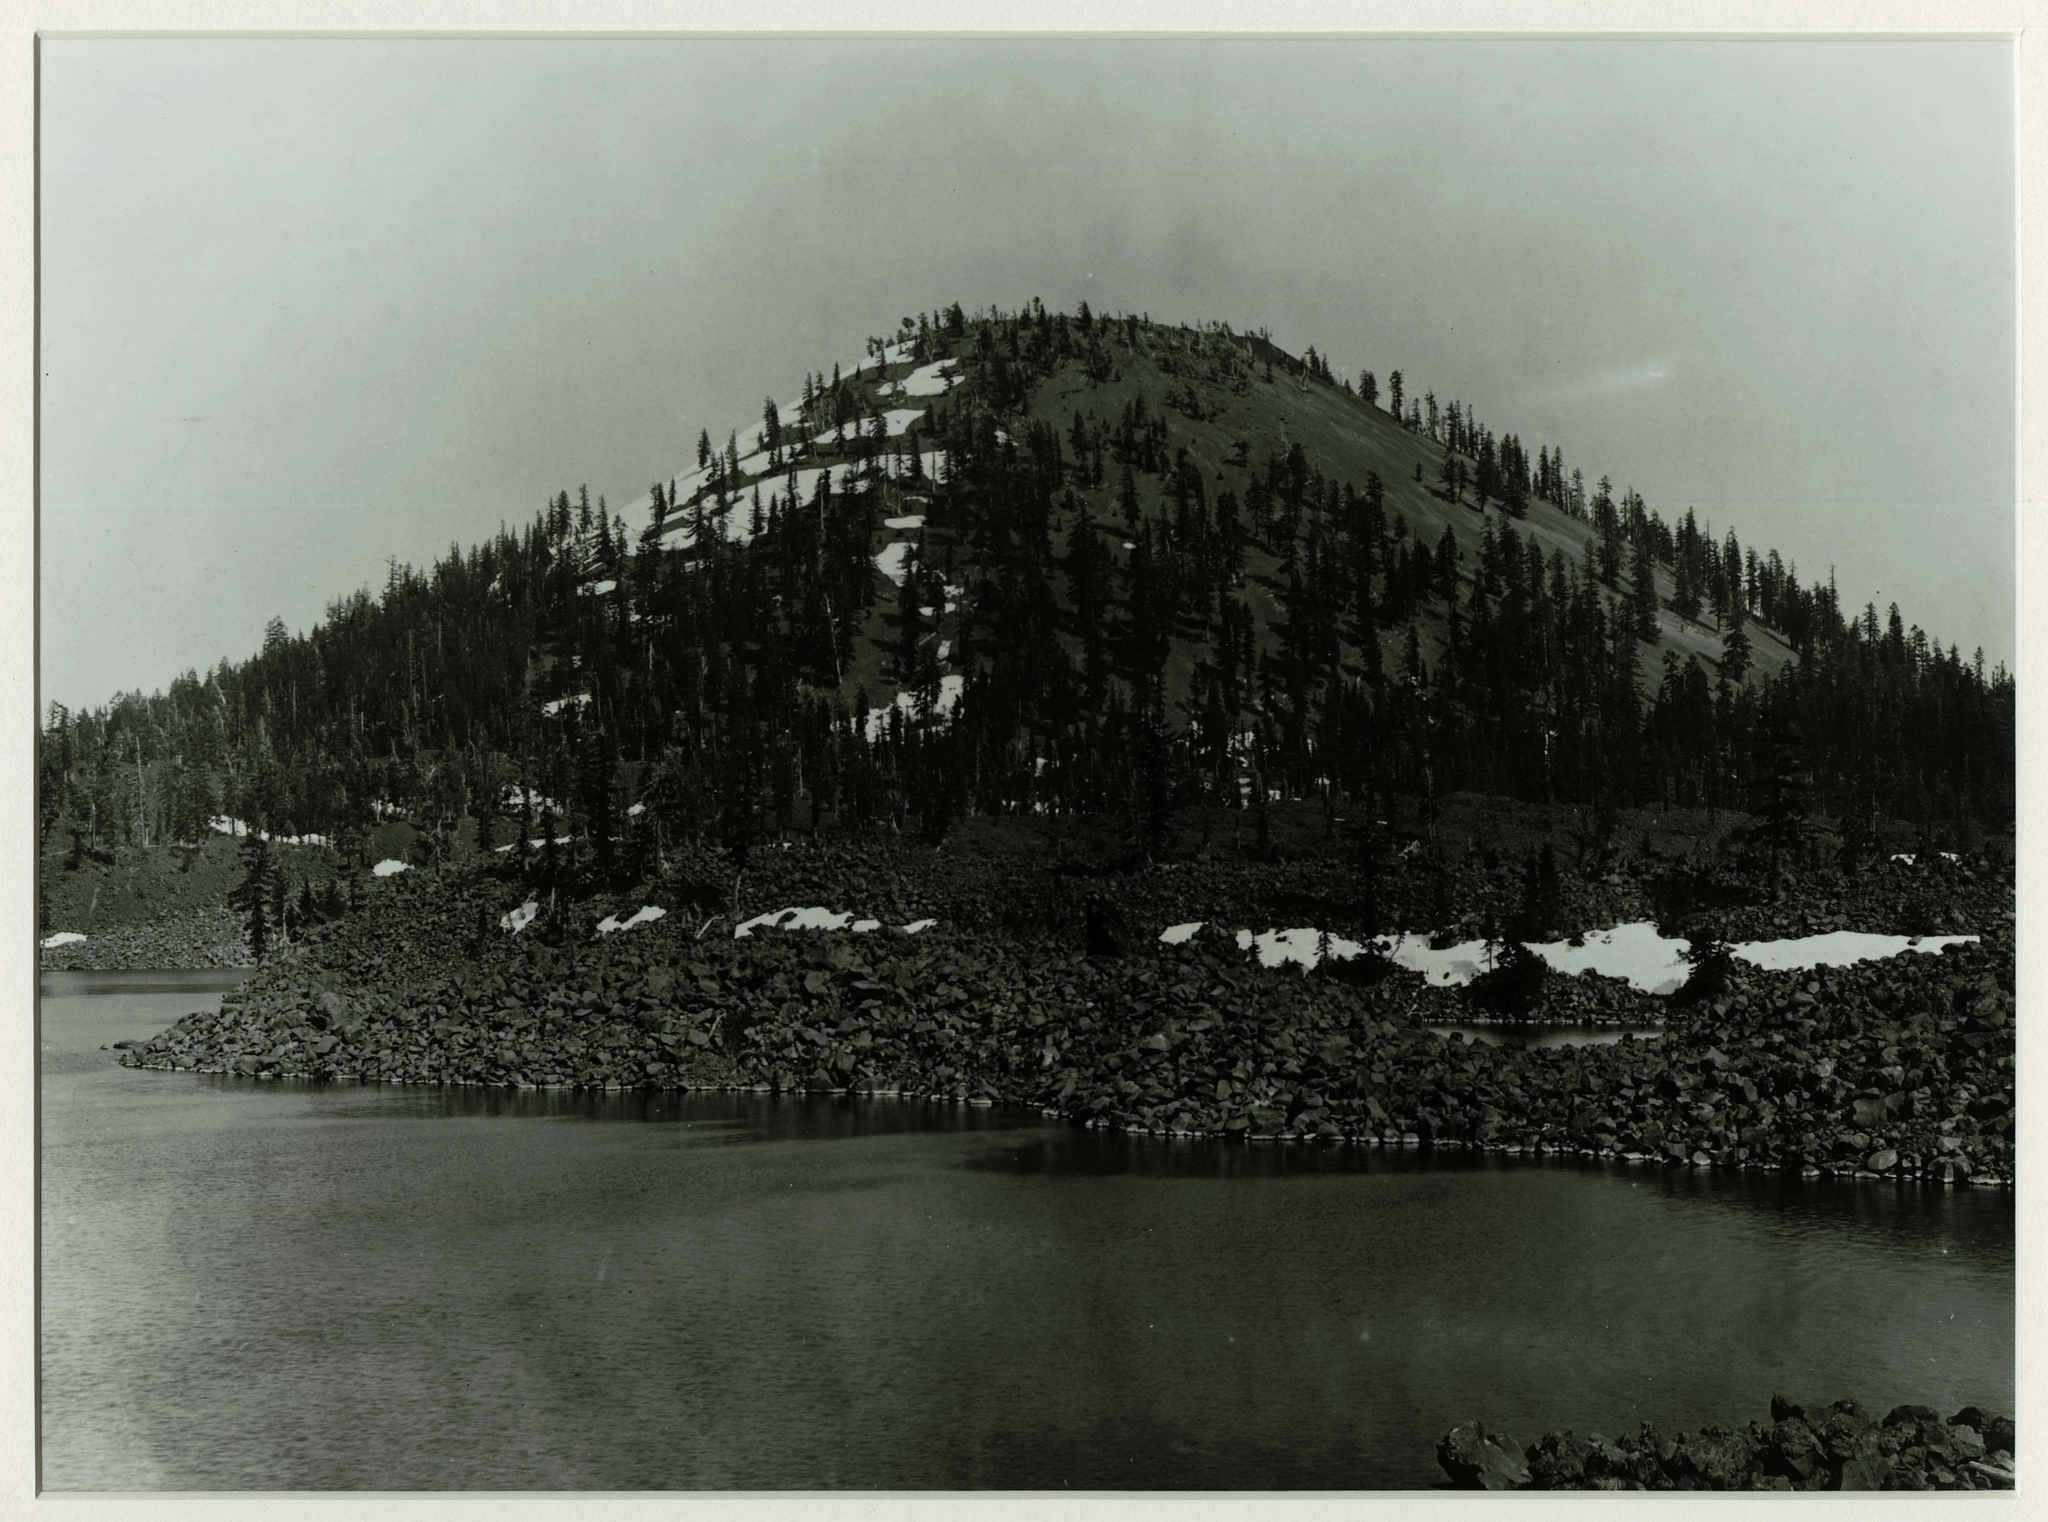 Wizard Island in Crater Lake. Photographed by J.S. Diller in the 1890s or 1901 during the USGS survey of the Crater Lake area.   Credit: Courtesy CRLA Museum & Archive Collections